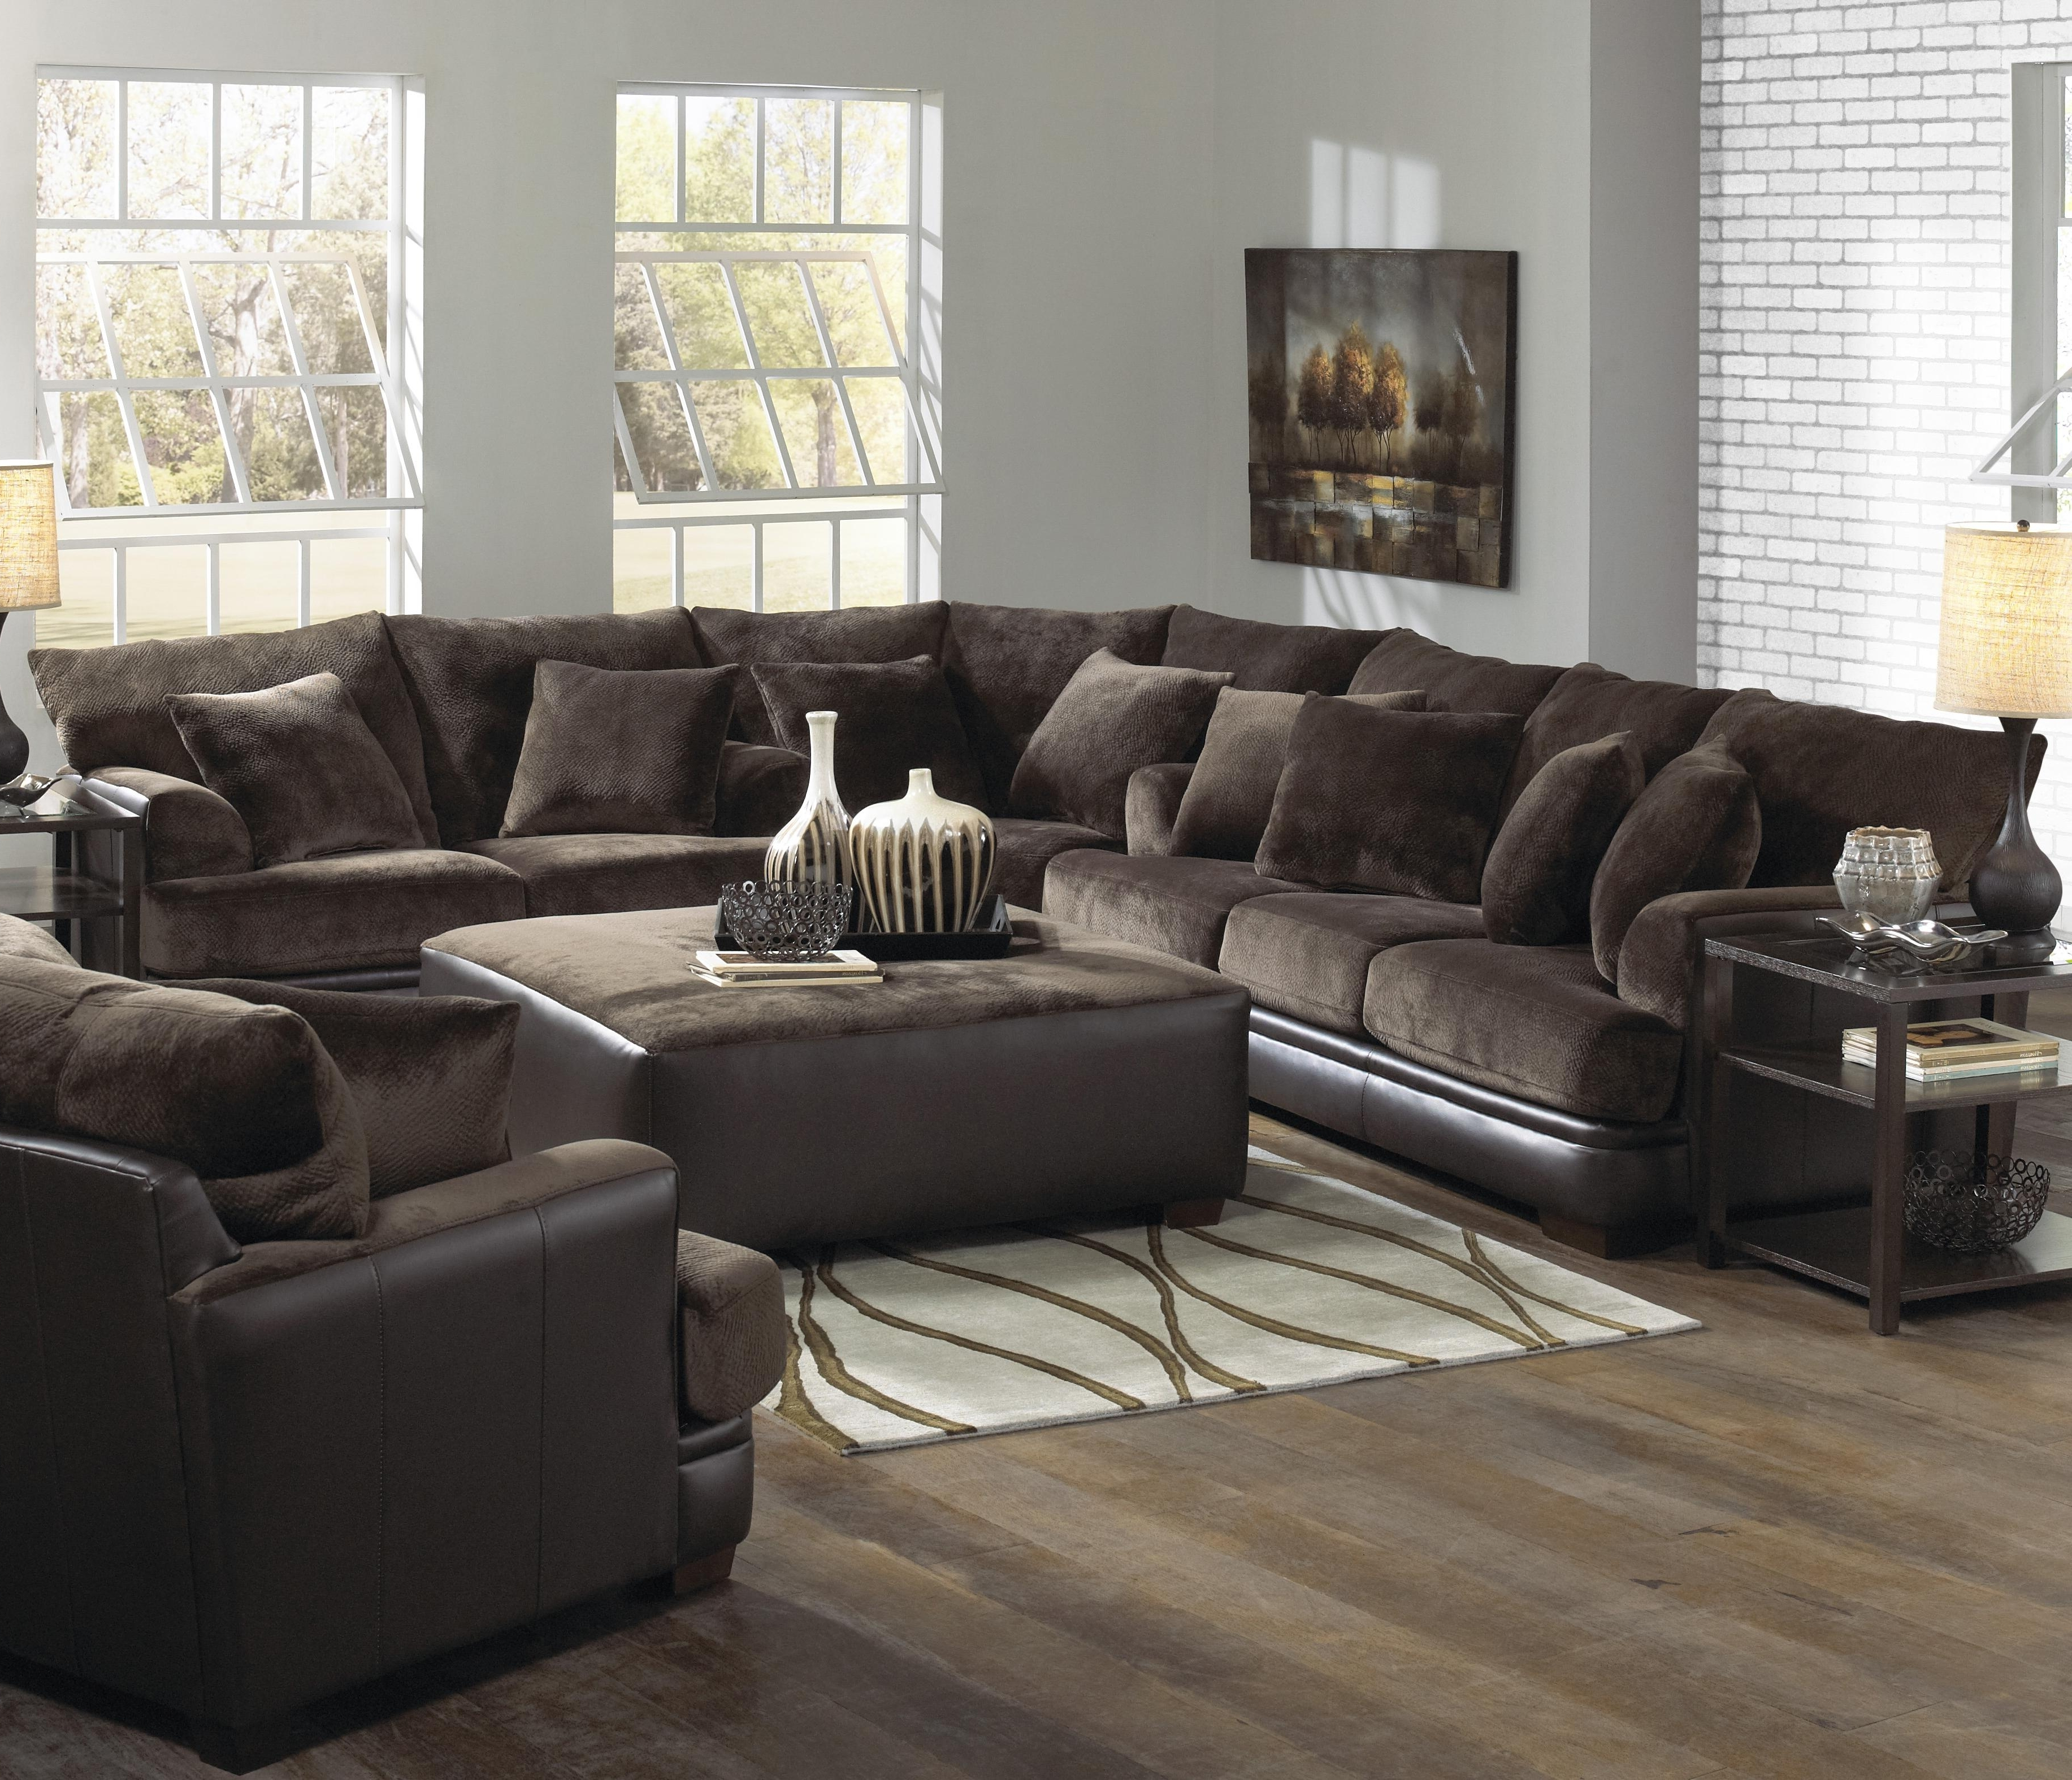 Amazing Large U Shaped Sectional Sofa 18 On Reclining Sectional pertaining to Best and Newest Small U Shaped Sectional Sofas